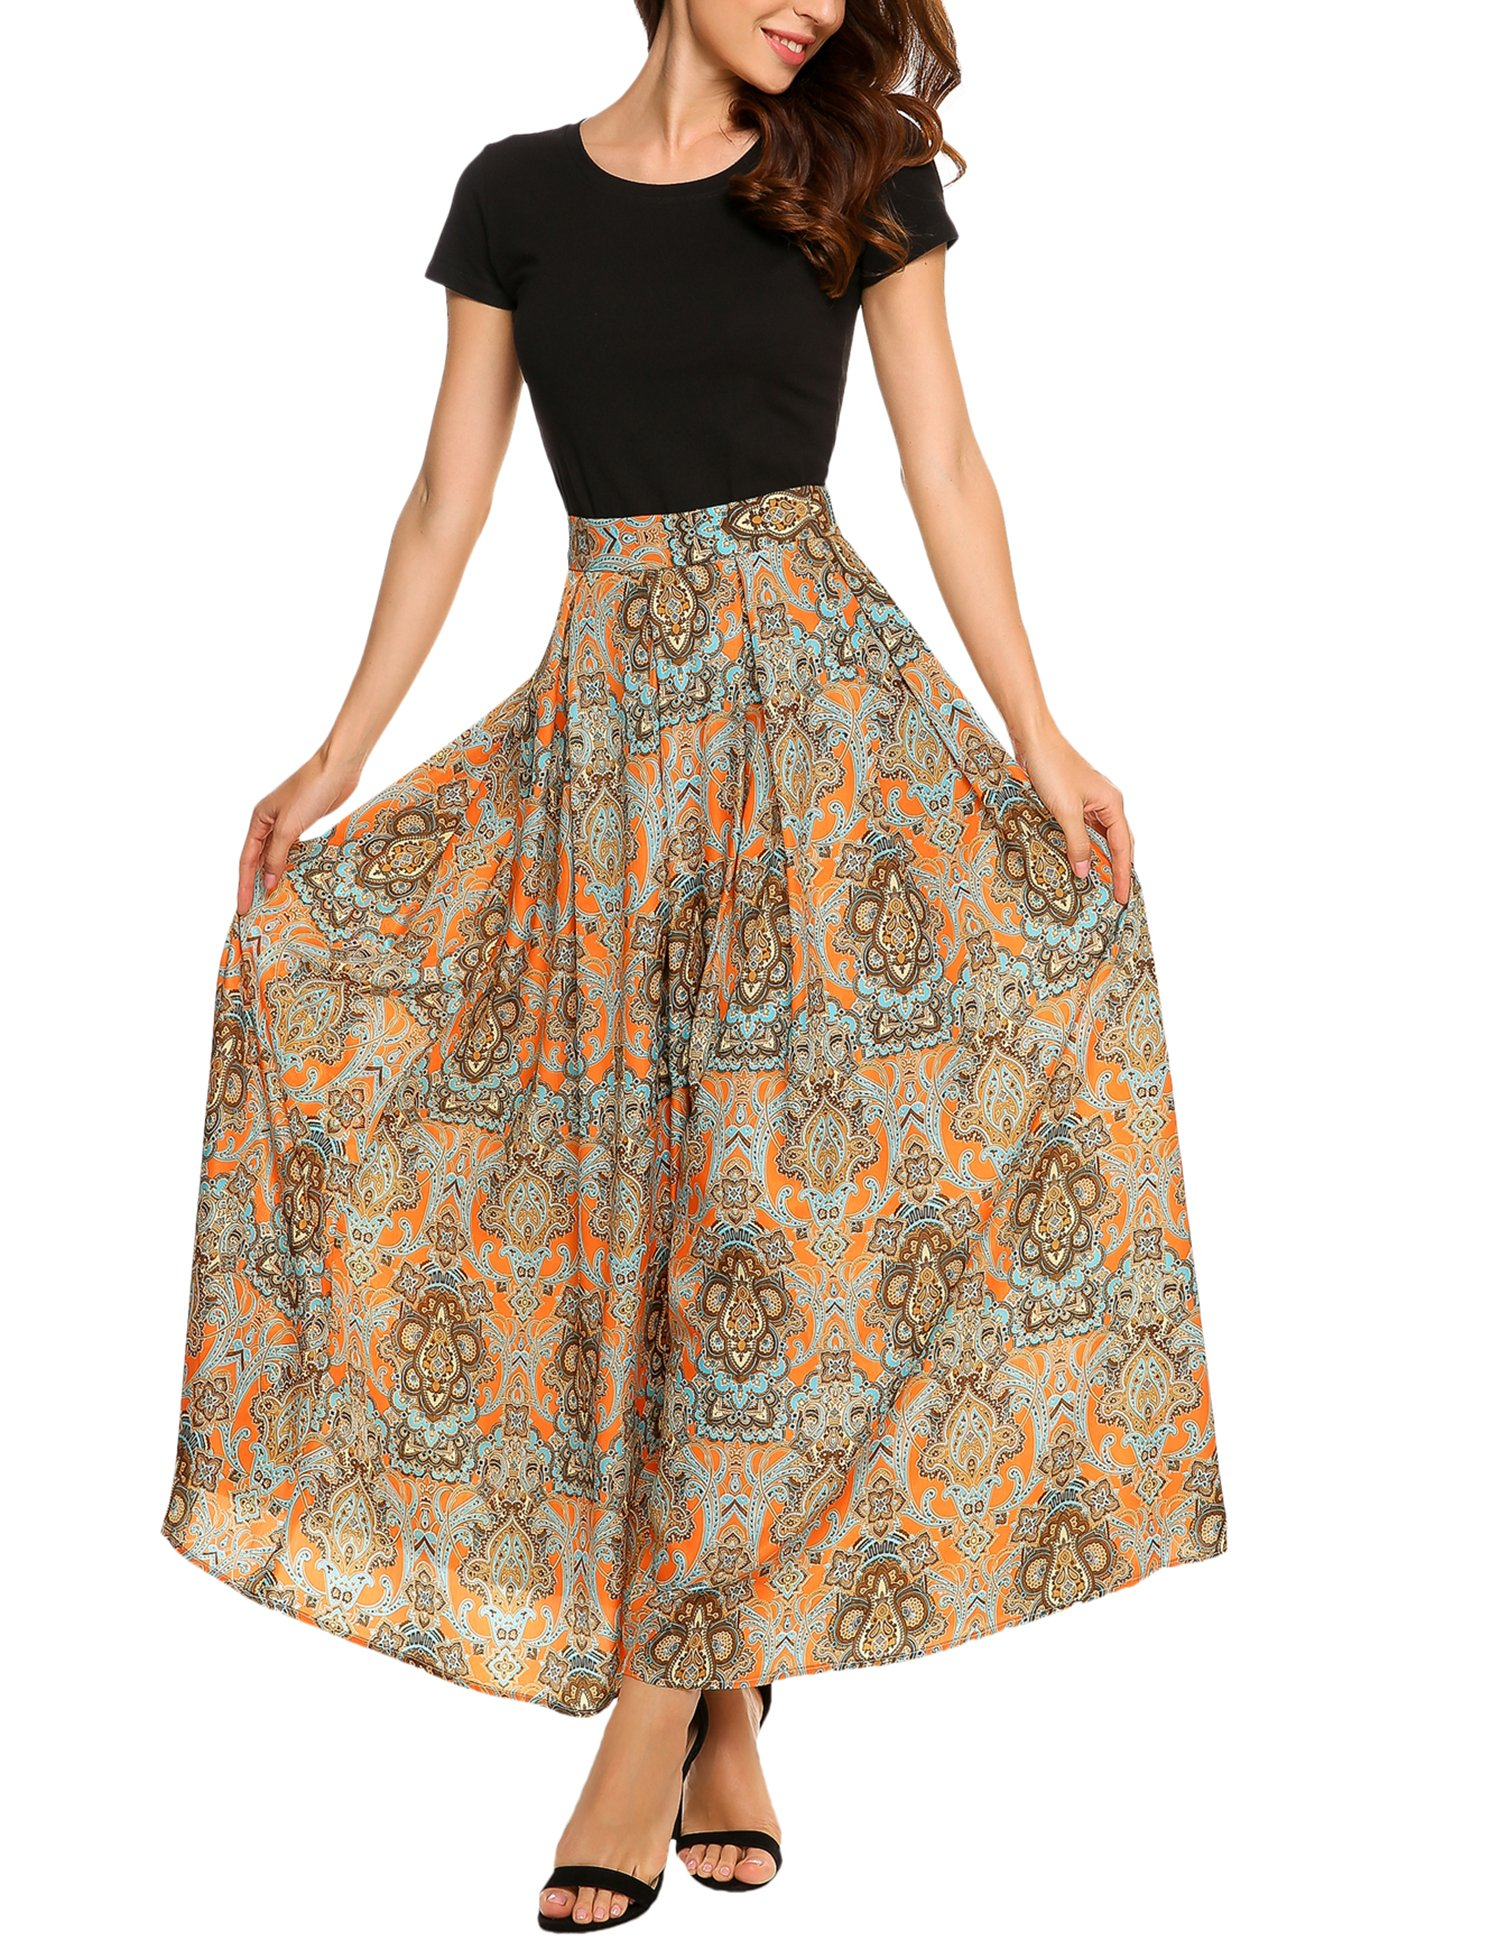 Zeagoo Women African Boho Floral Print High Waist Beach Party Bohemia Long Maxi Skirt